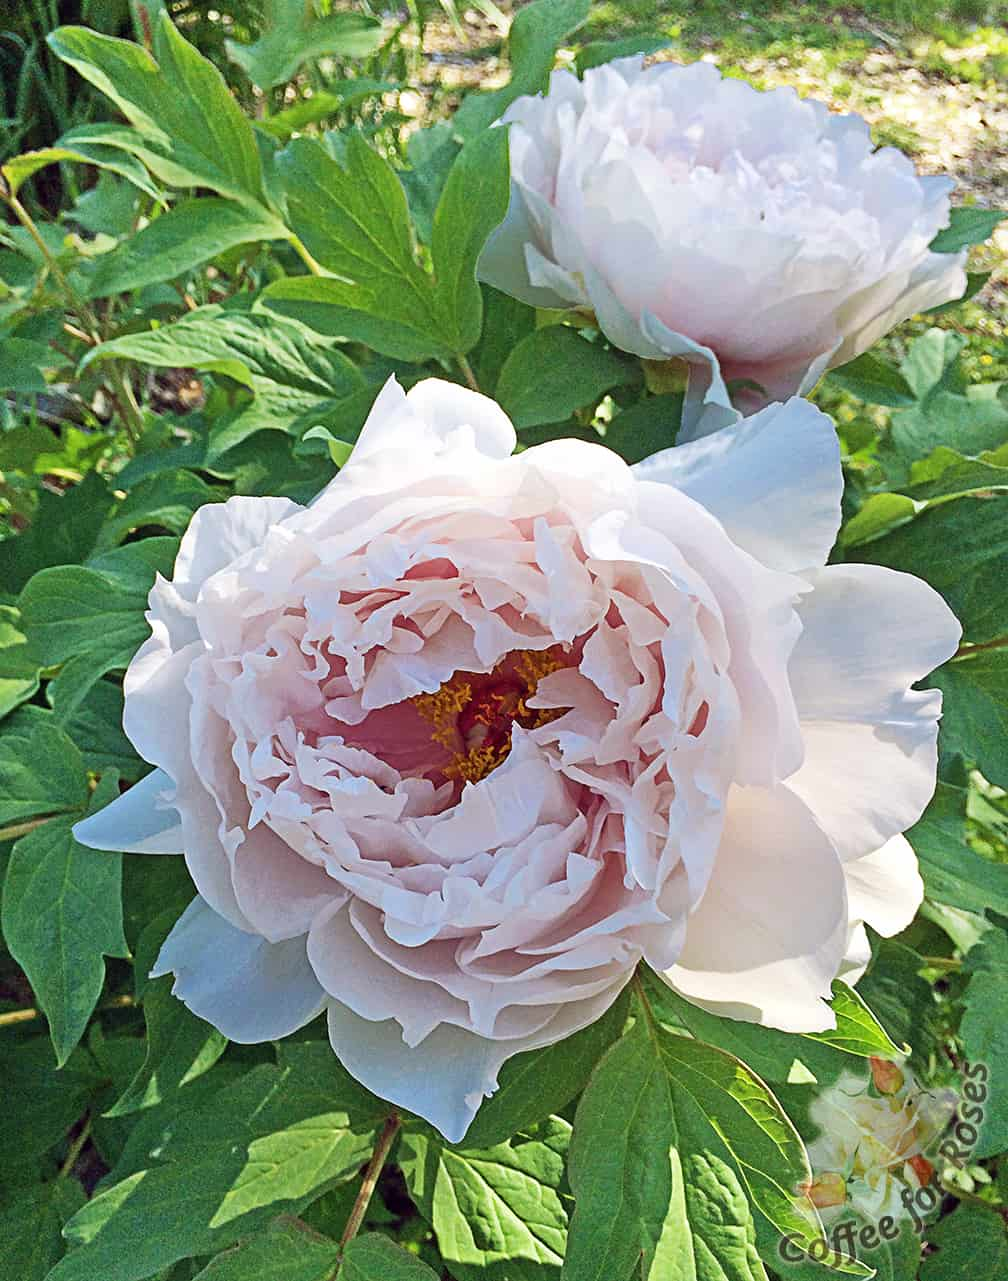 I Love Tree Peonies